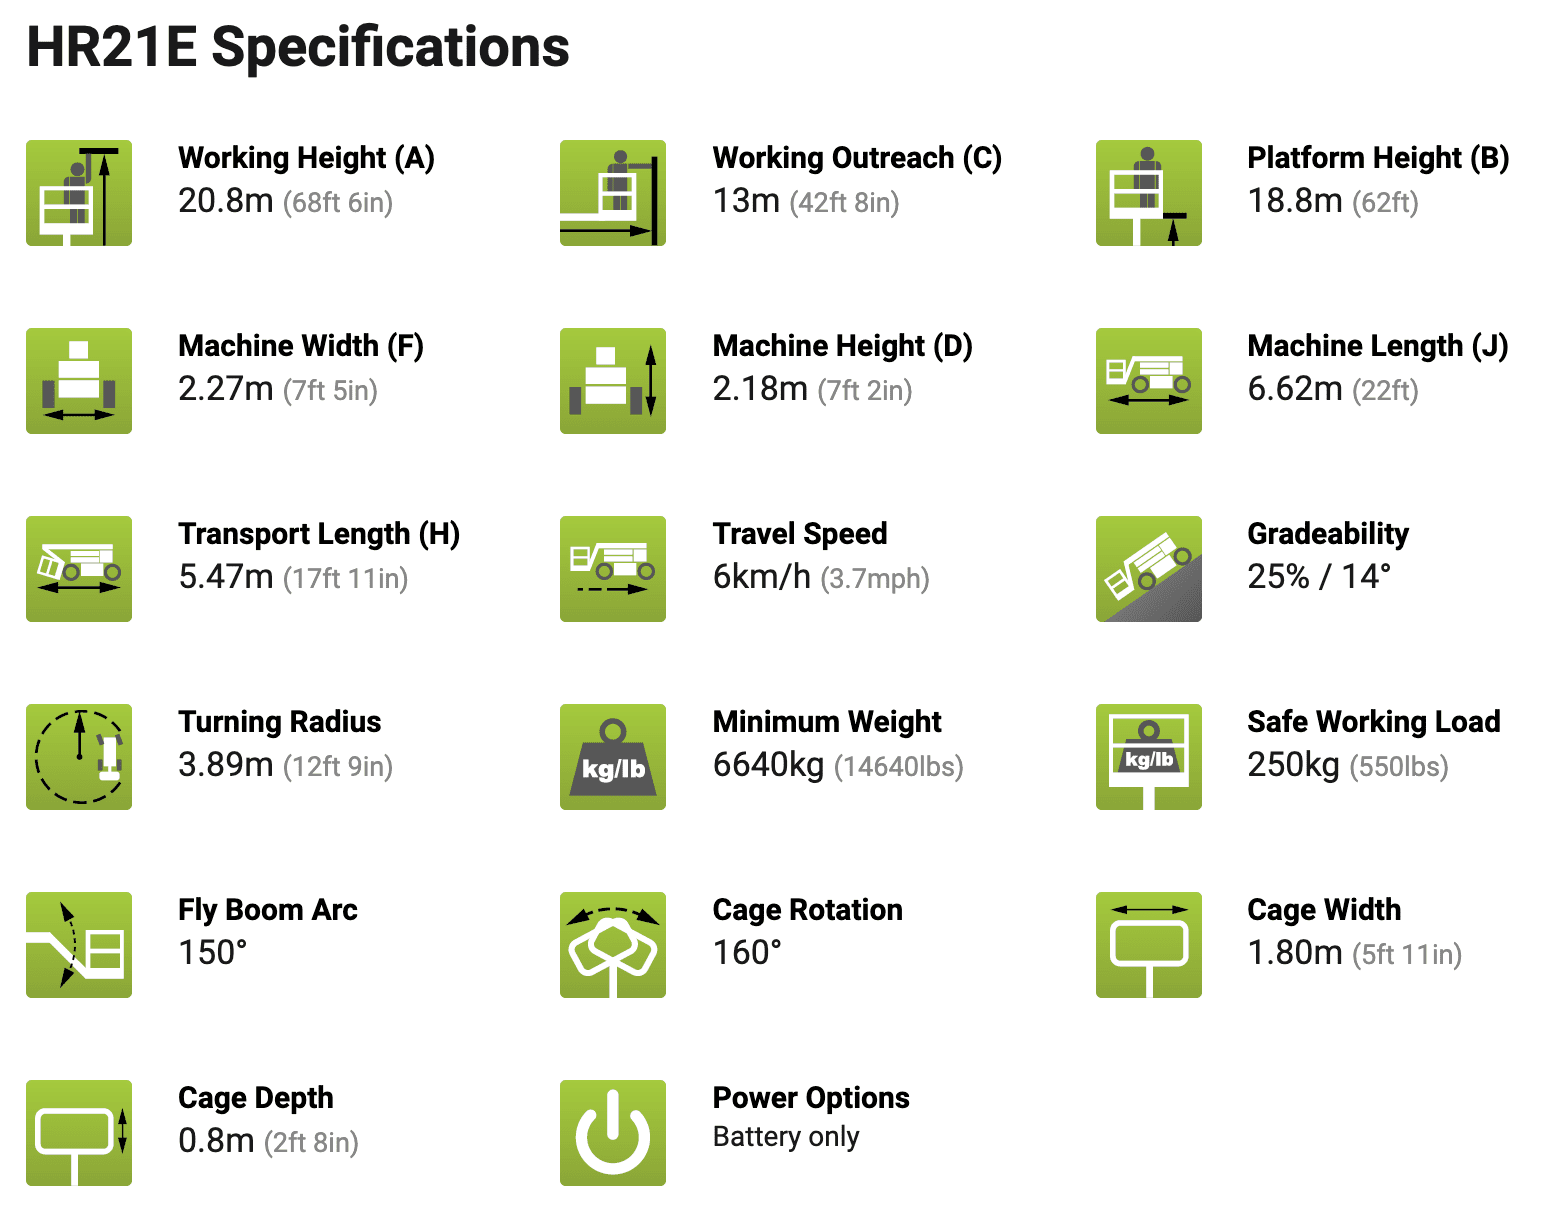 specifications HR21E